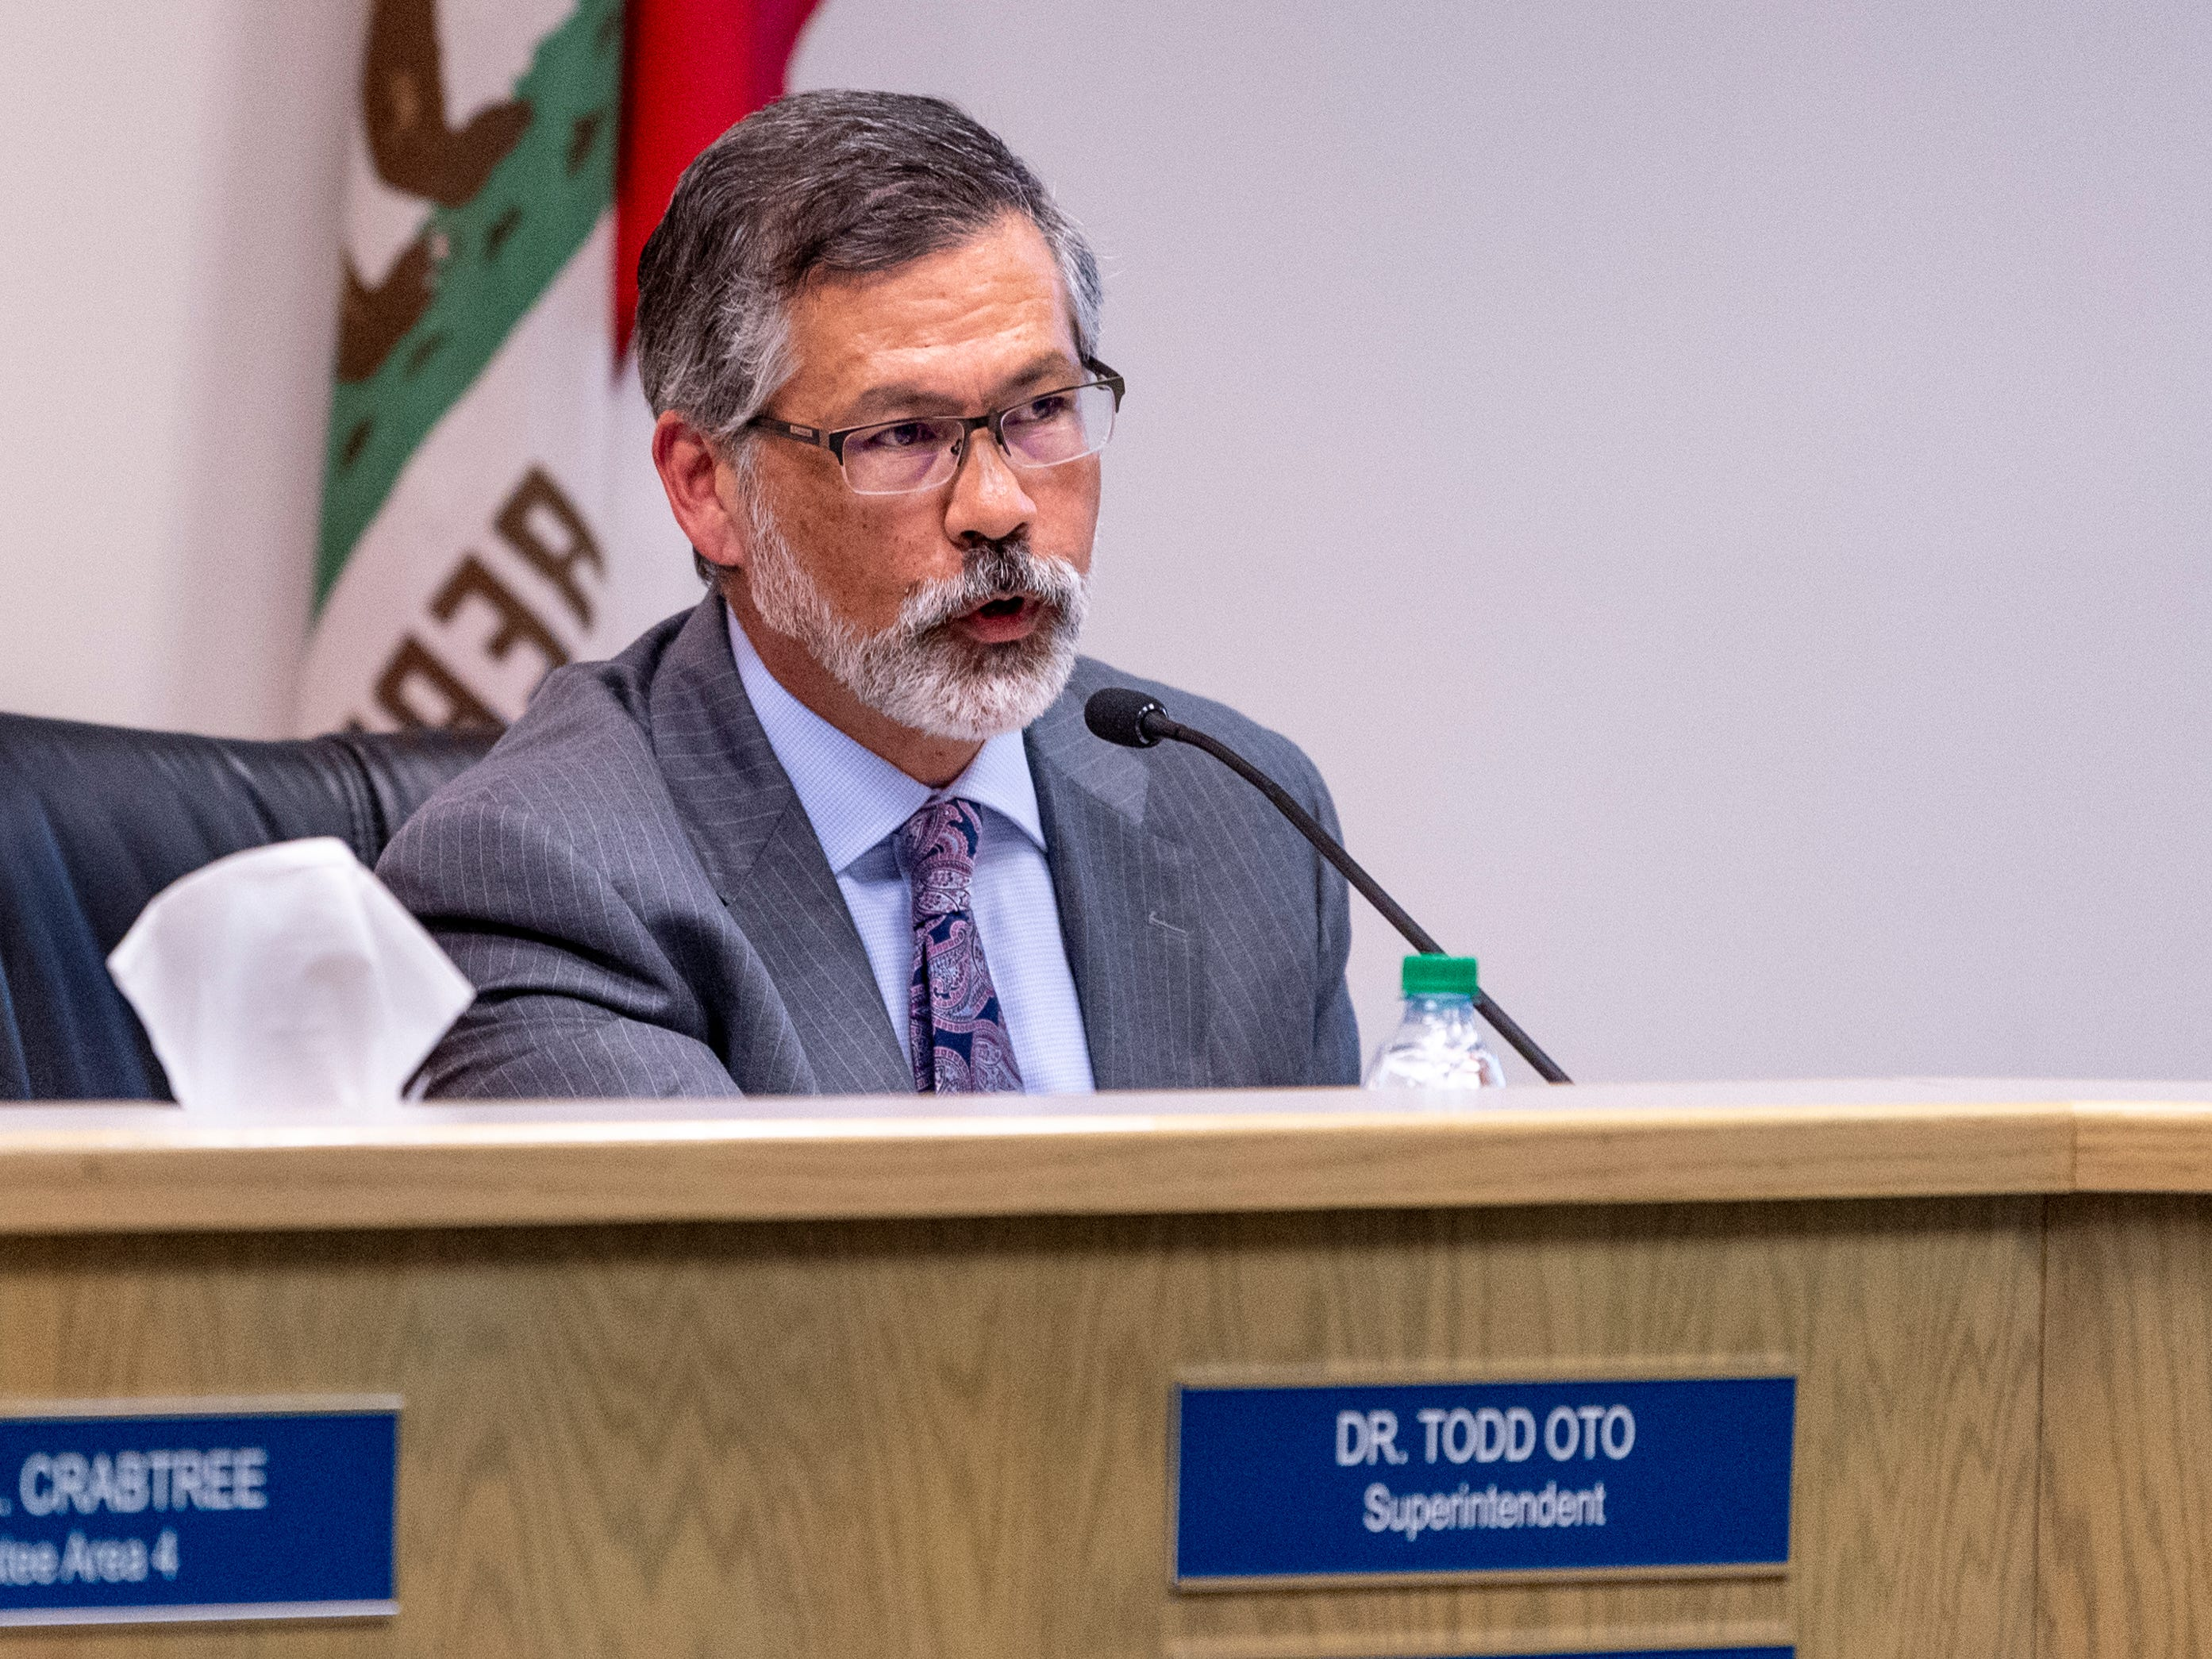 Superintendent Todd Oto speaks after the Visalia Unified School board announced they had voted to accept his resignation on Tuesday, May 7, 2019.